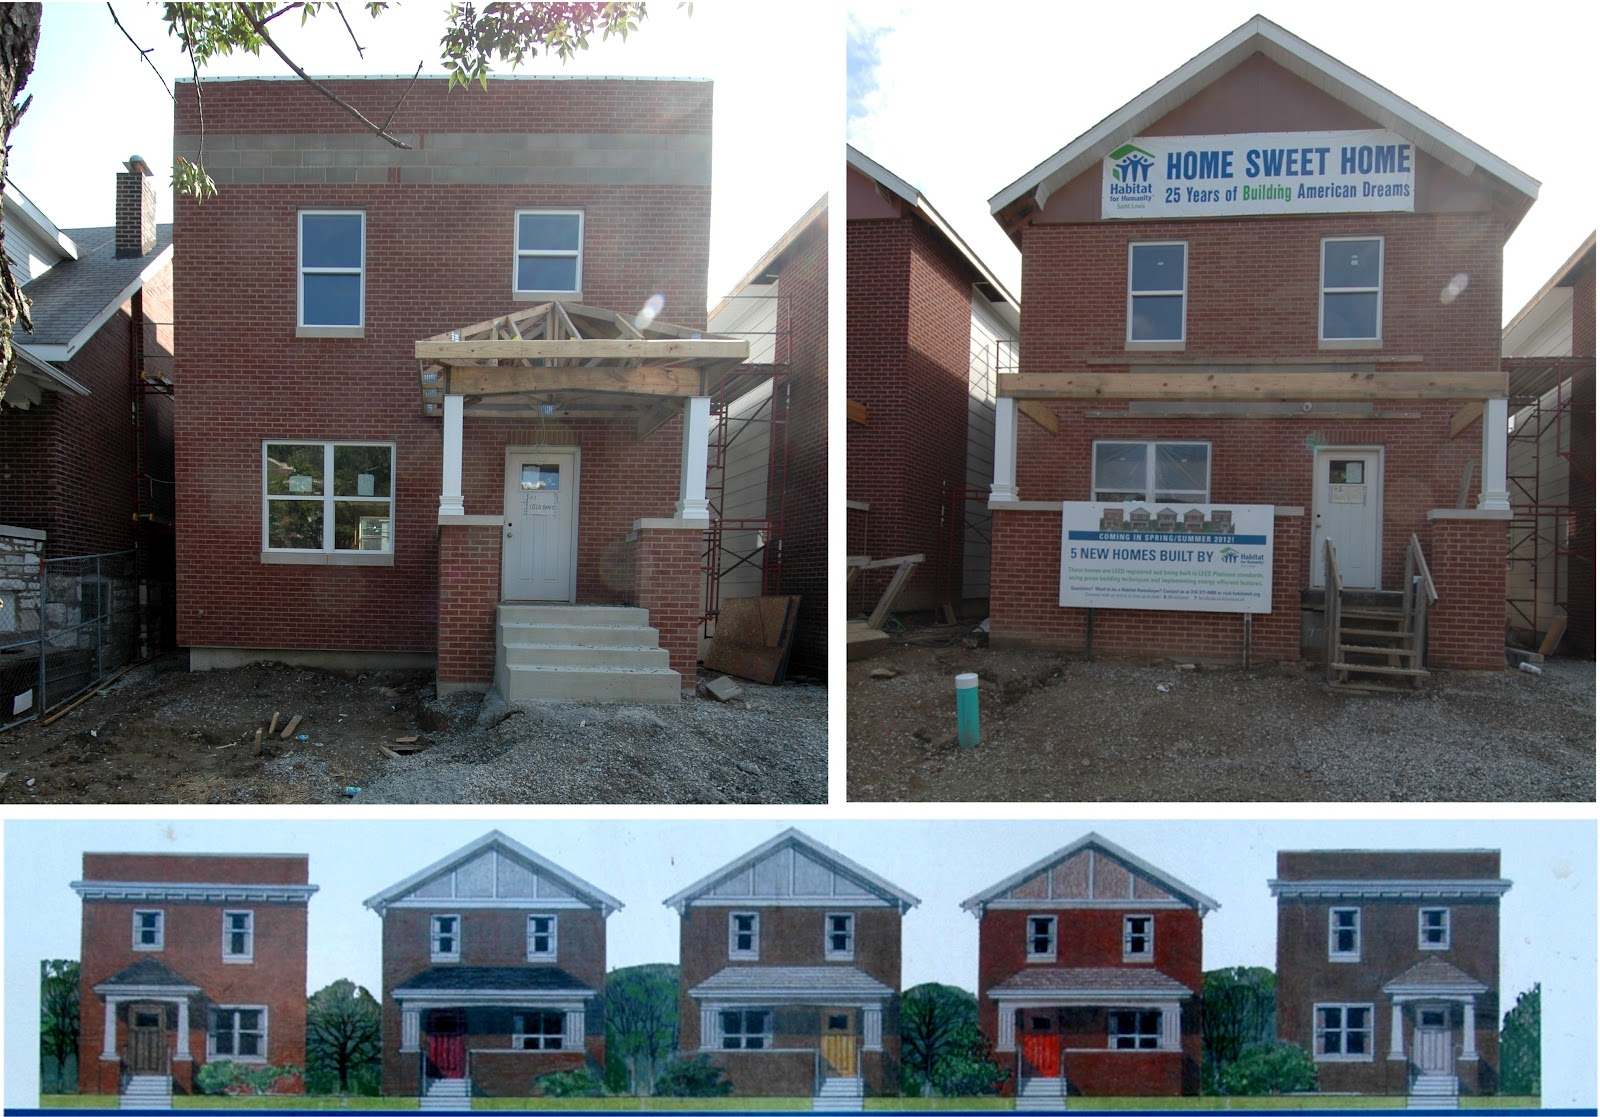 The Art Of Construction Habitat For Humanity Saint Louis Diverse Design And Leed Platinum Performance